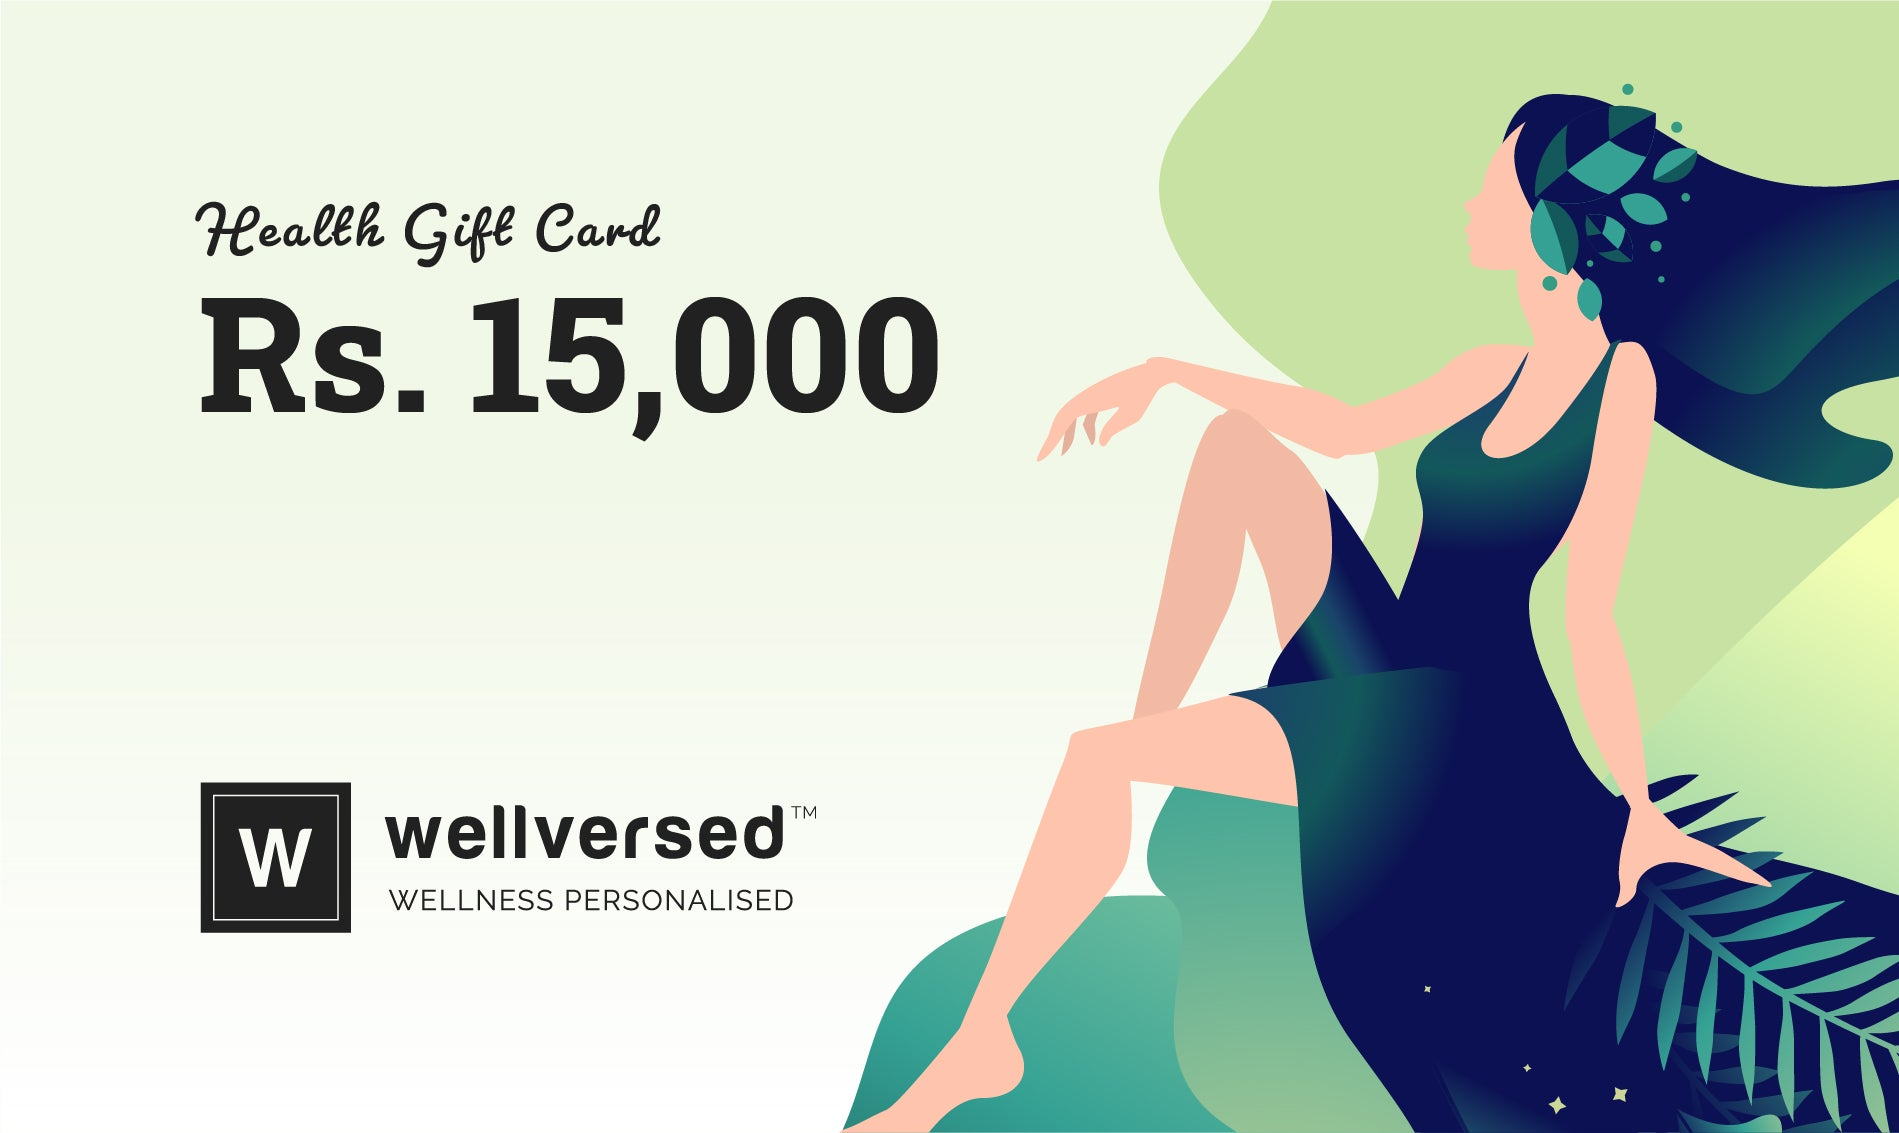 Health Gift Card - Rs. 15,000